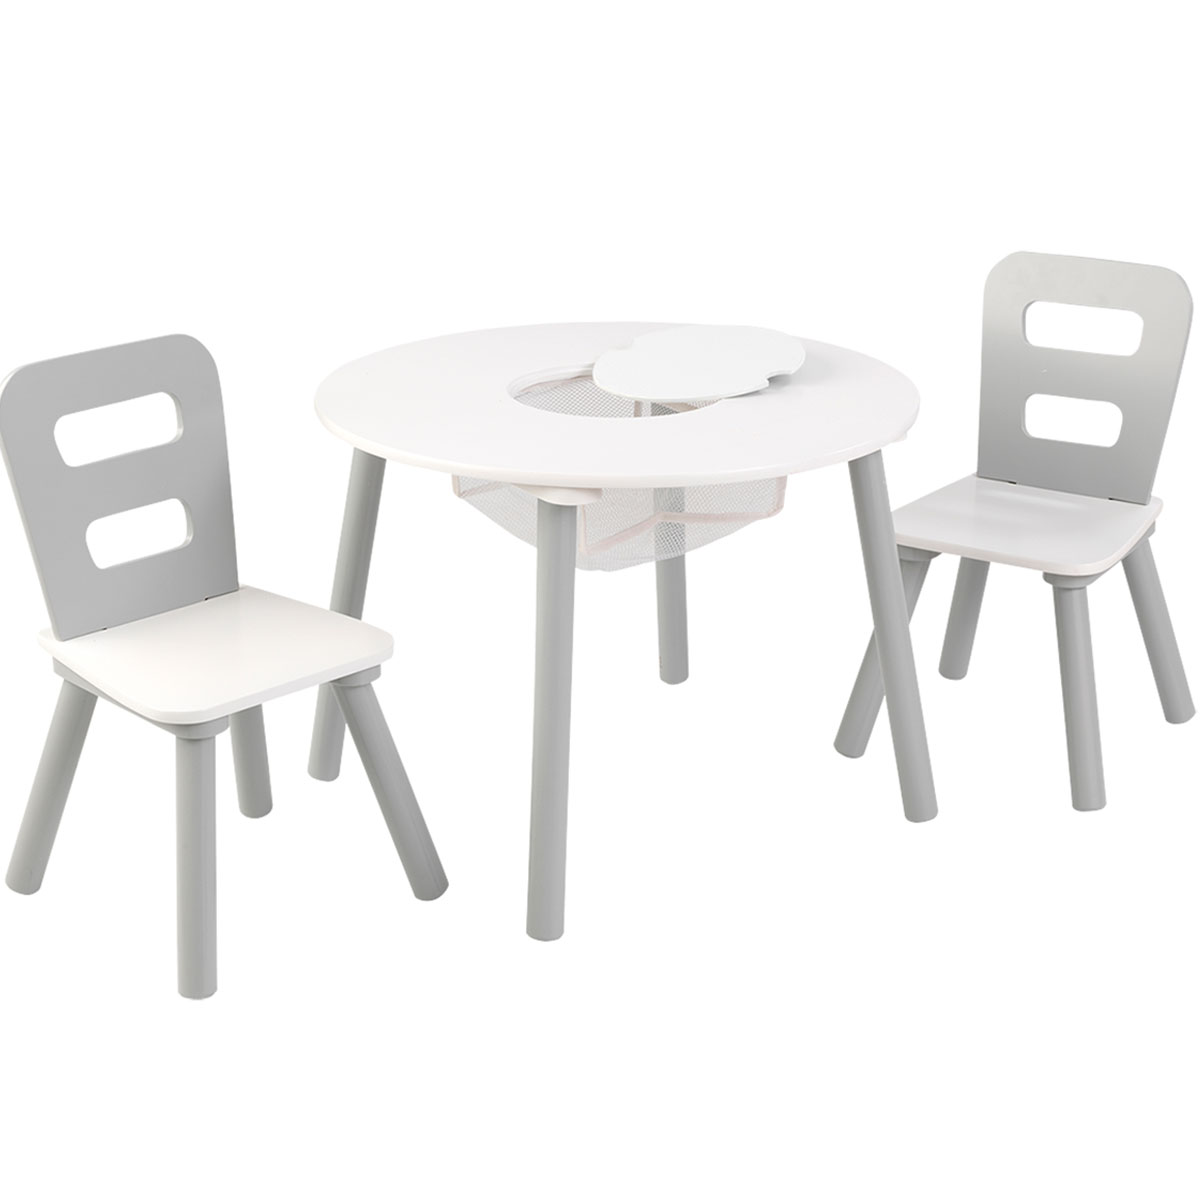 kidkraft white table and chairs the mermaid chair round 2 set gray 26166